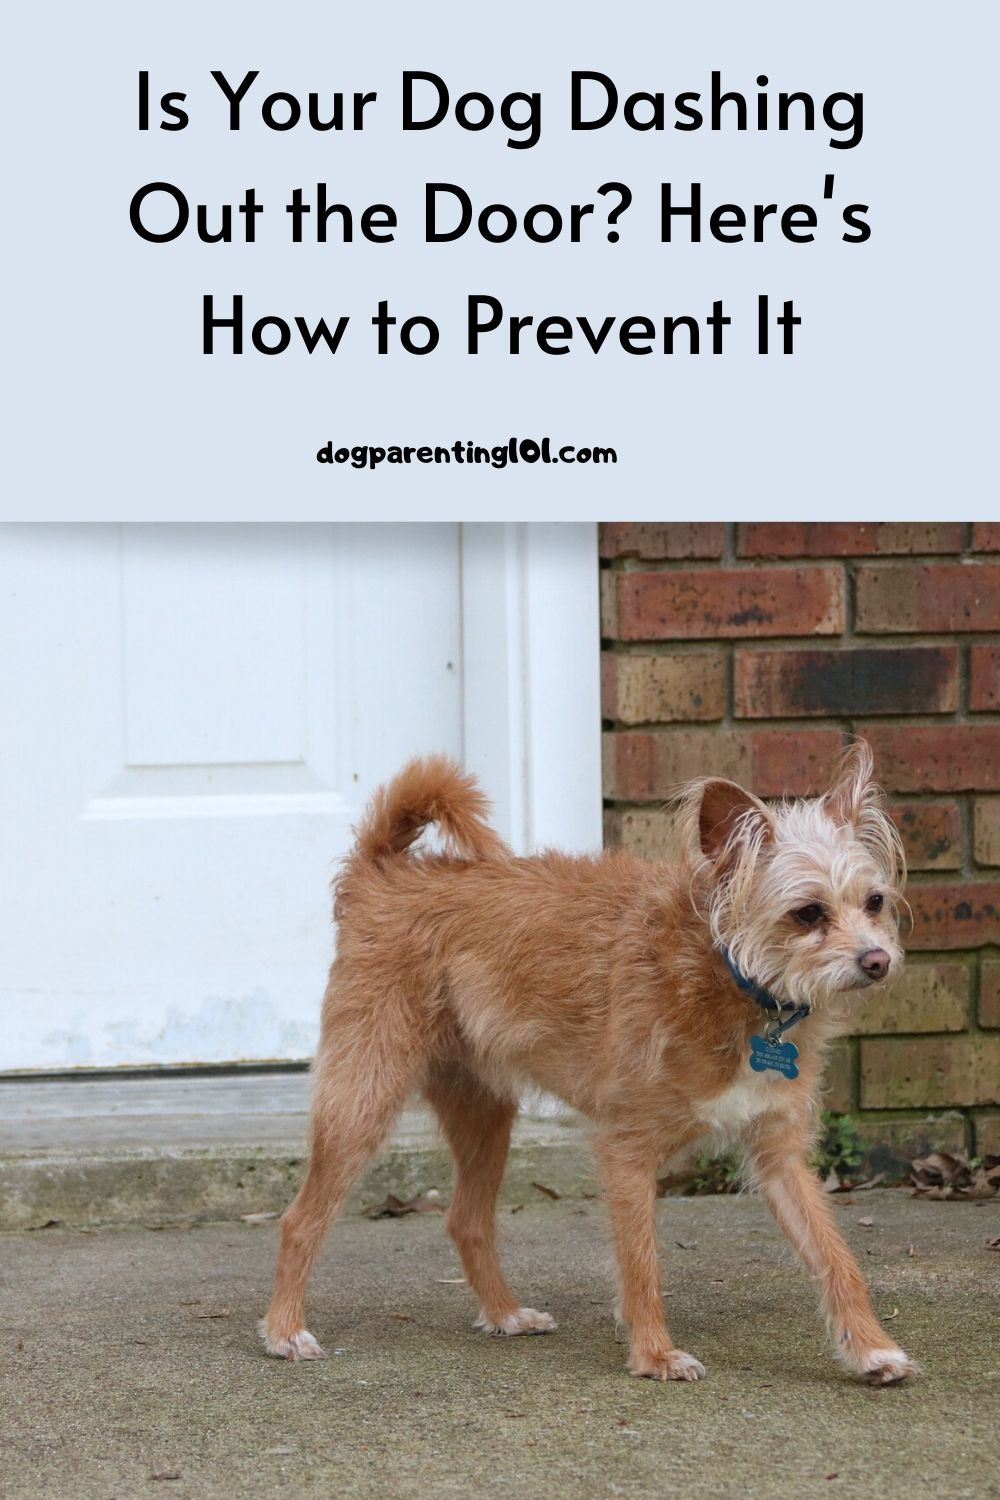 Is Your Dog Dashing Out the Door Here's How to Prevent It